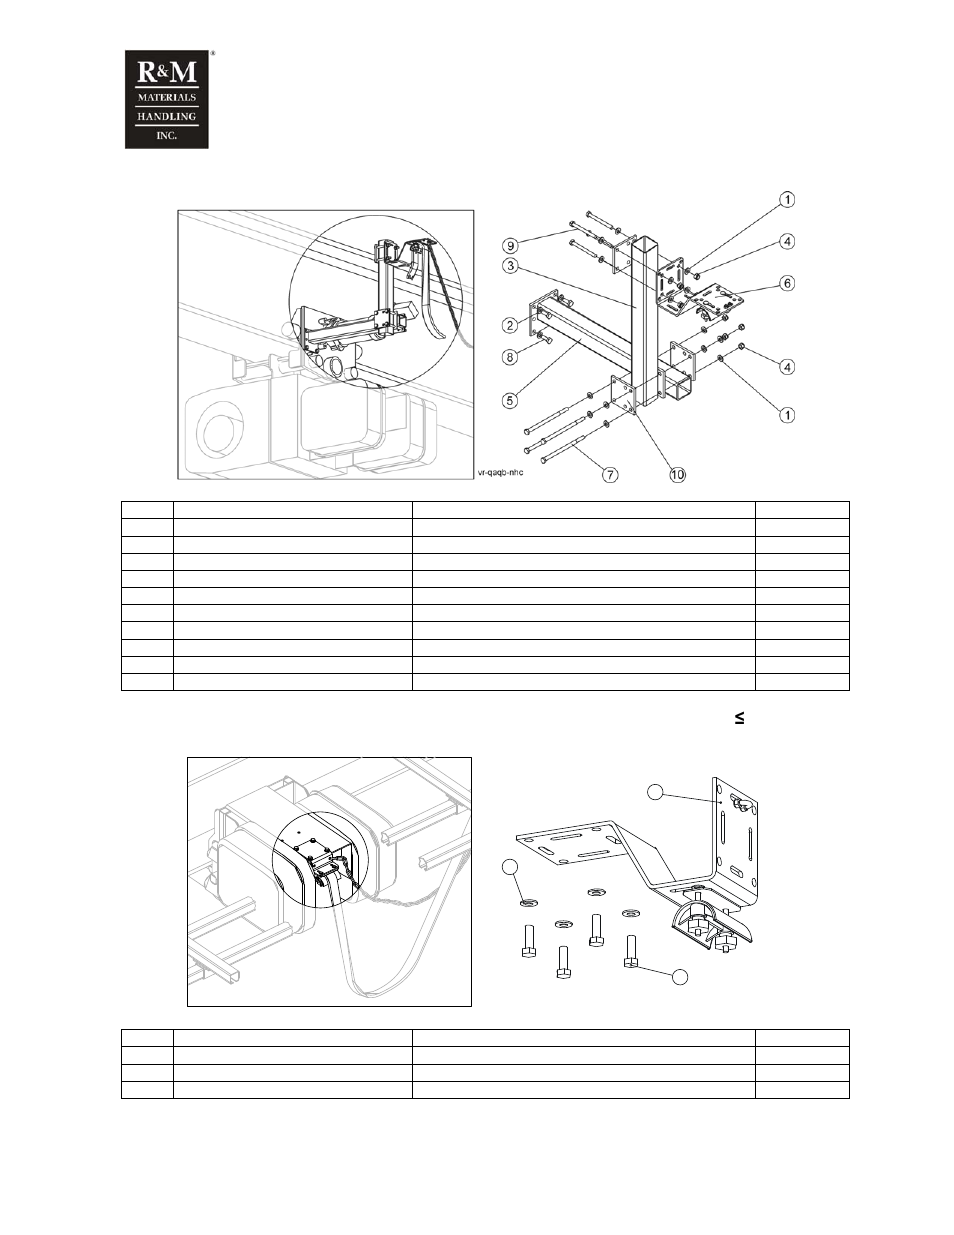 R&M Materials Handling WIRE ROPE PACKAGES User Manual | Page 29 / 76